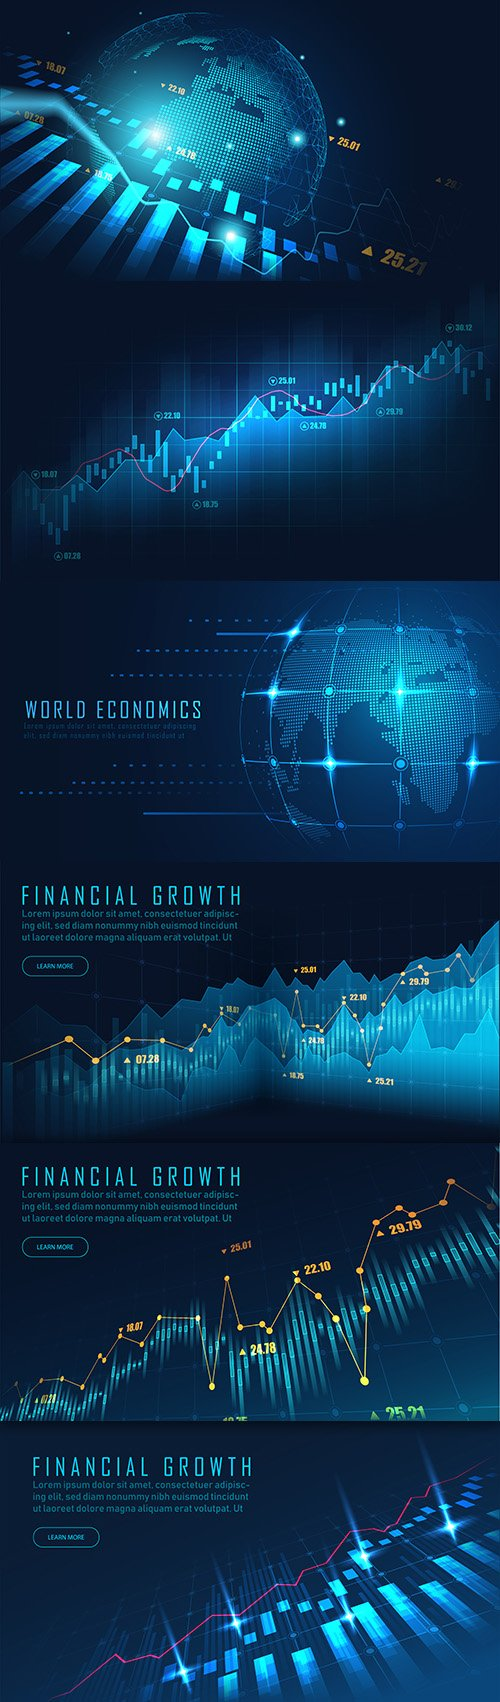 Financial market and trading schedule concept banner